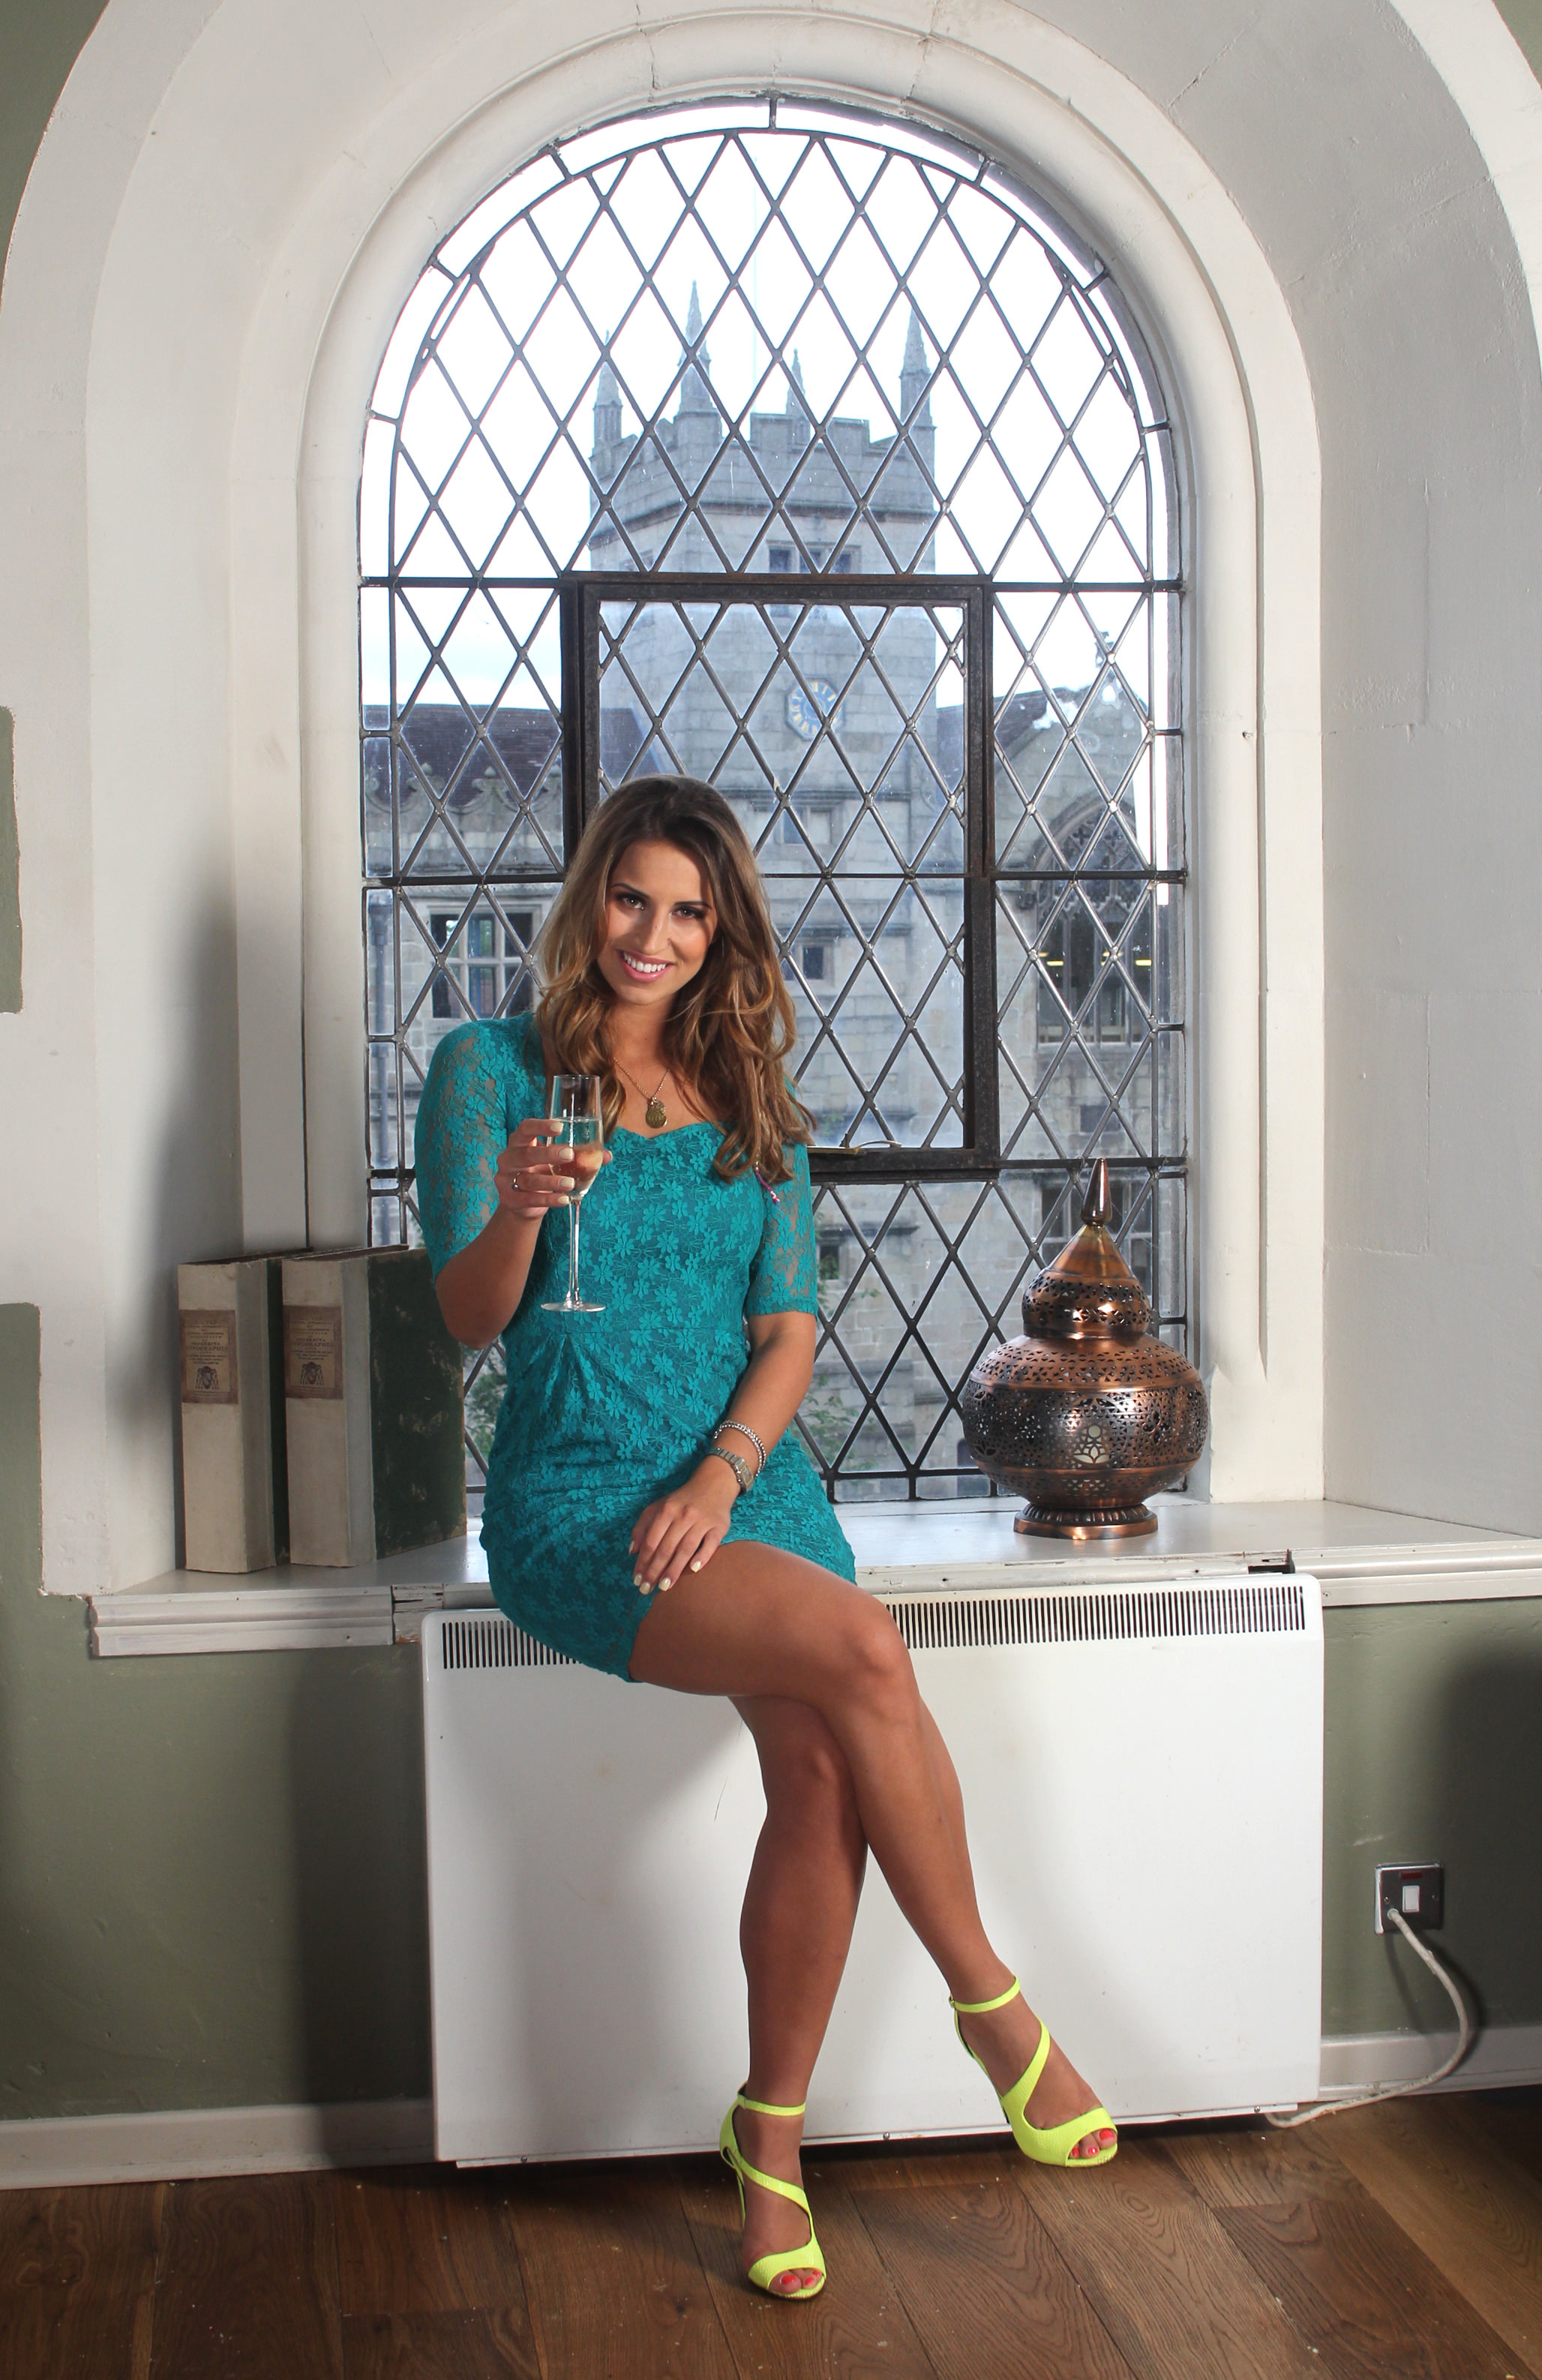 The Only Way Is Essex  TV Star Ferne McCann to launch St Nicholas Bar and  Spa in Shrewsbury.   e327b7e52